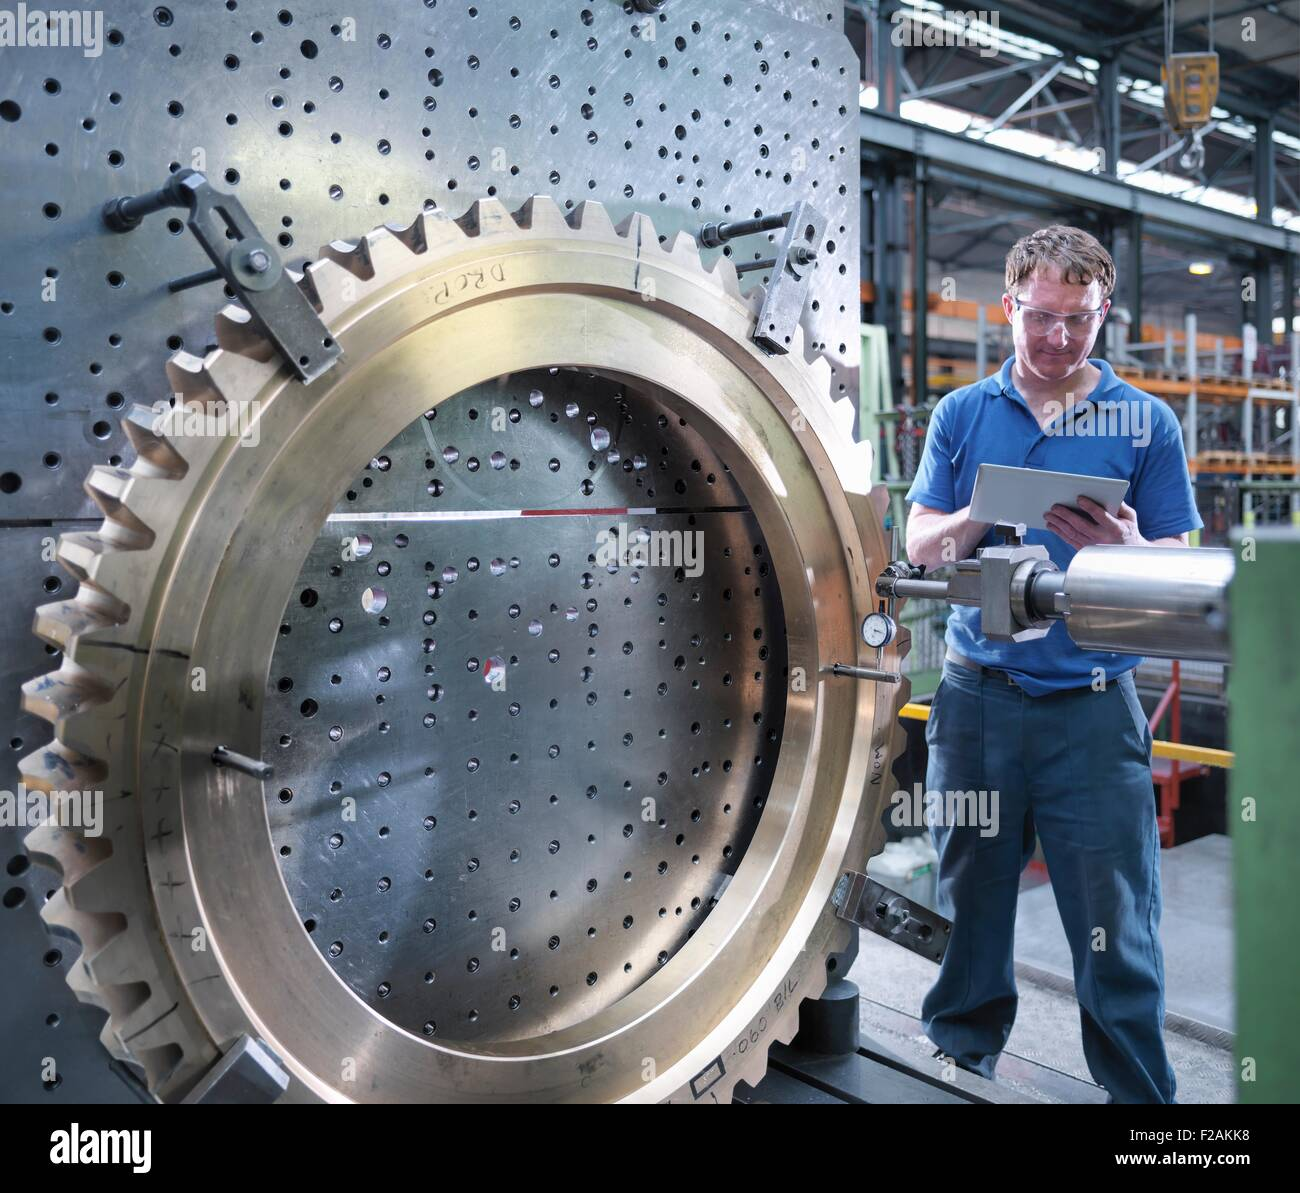 Engineer inspecting drawing on digital tablet of gear wheel on lathe in engineering factory - Stock Image